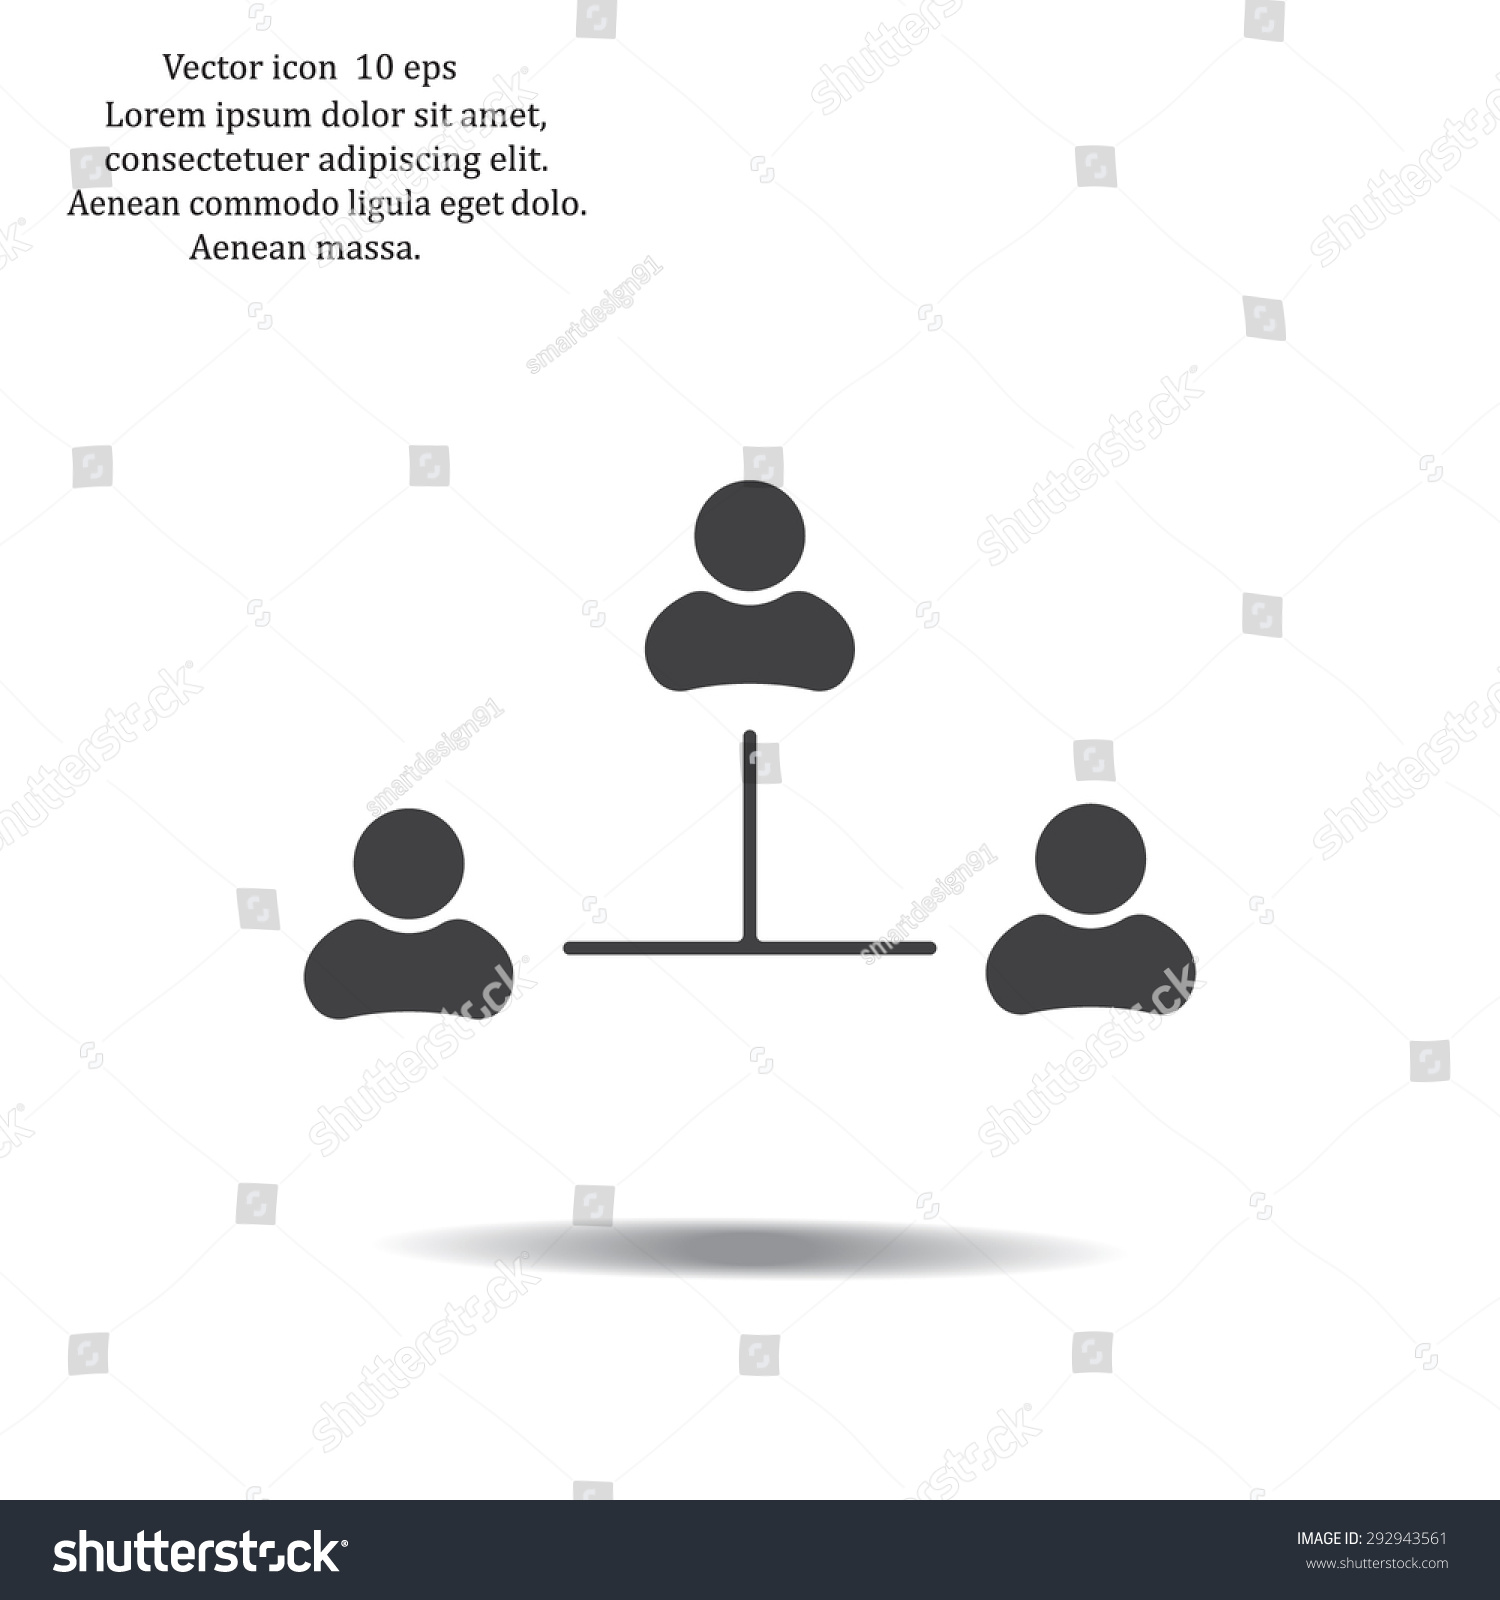 three people connected in a network - symbol for download  vector icons for  video,